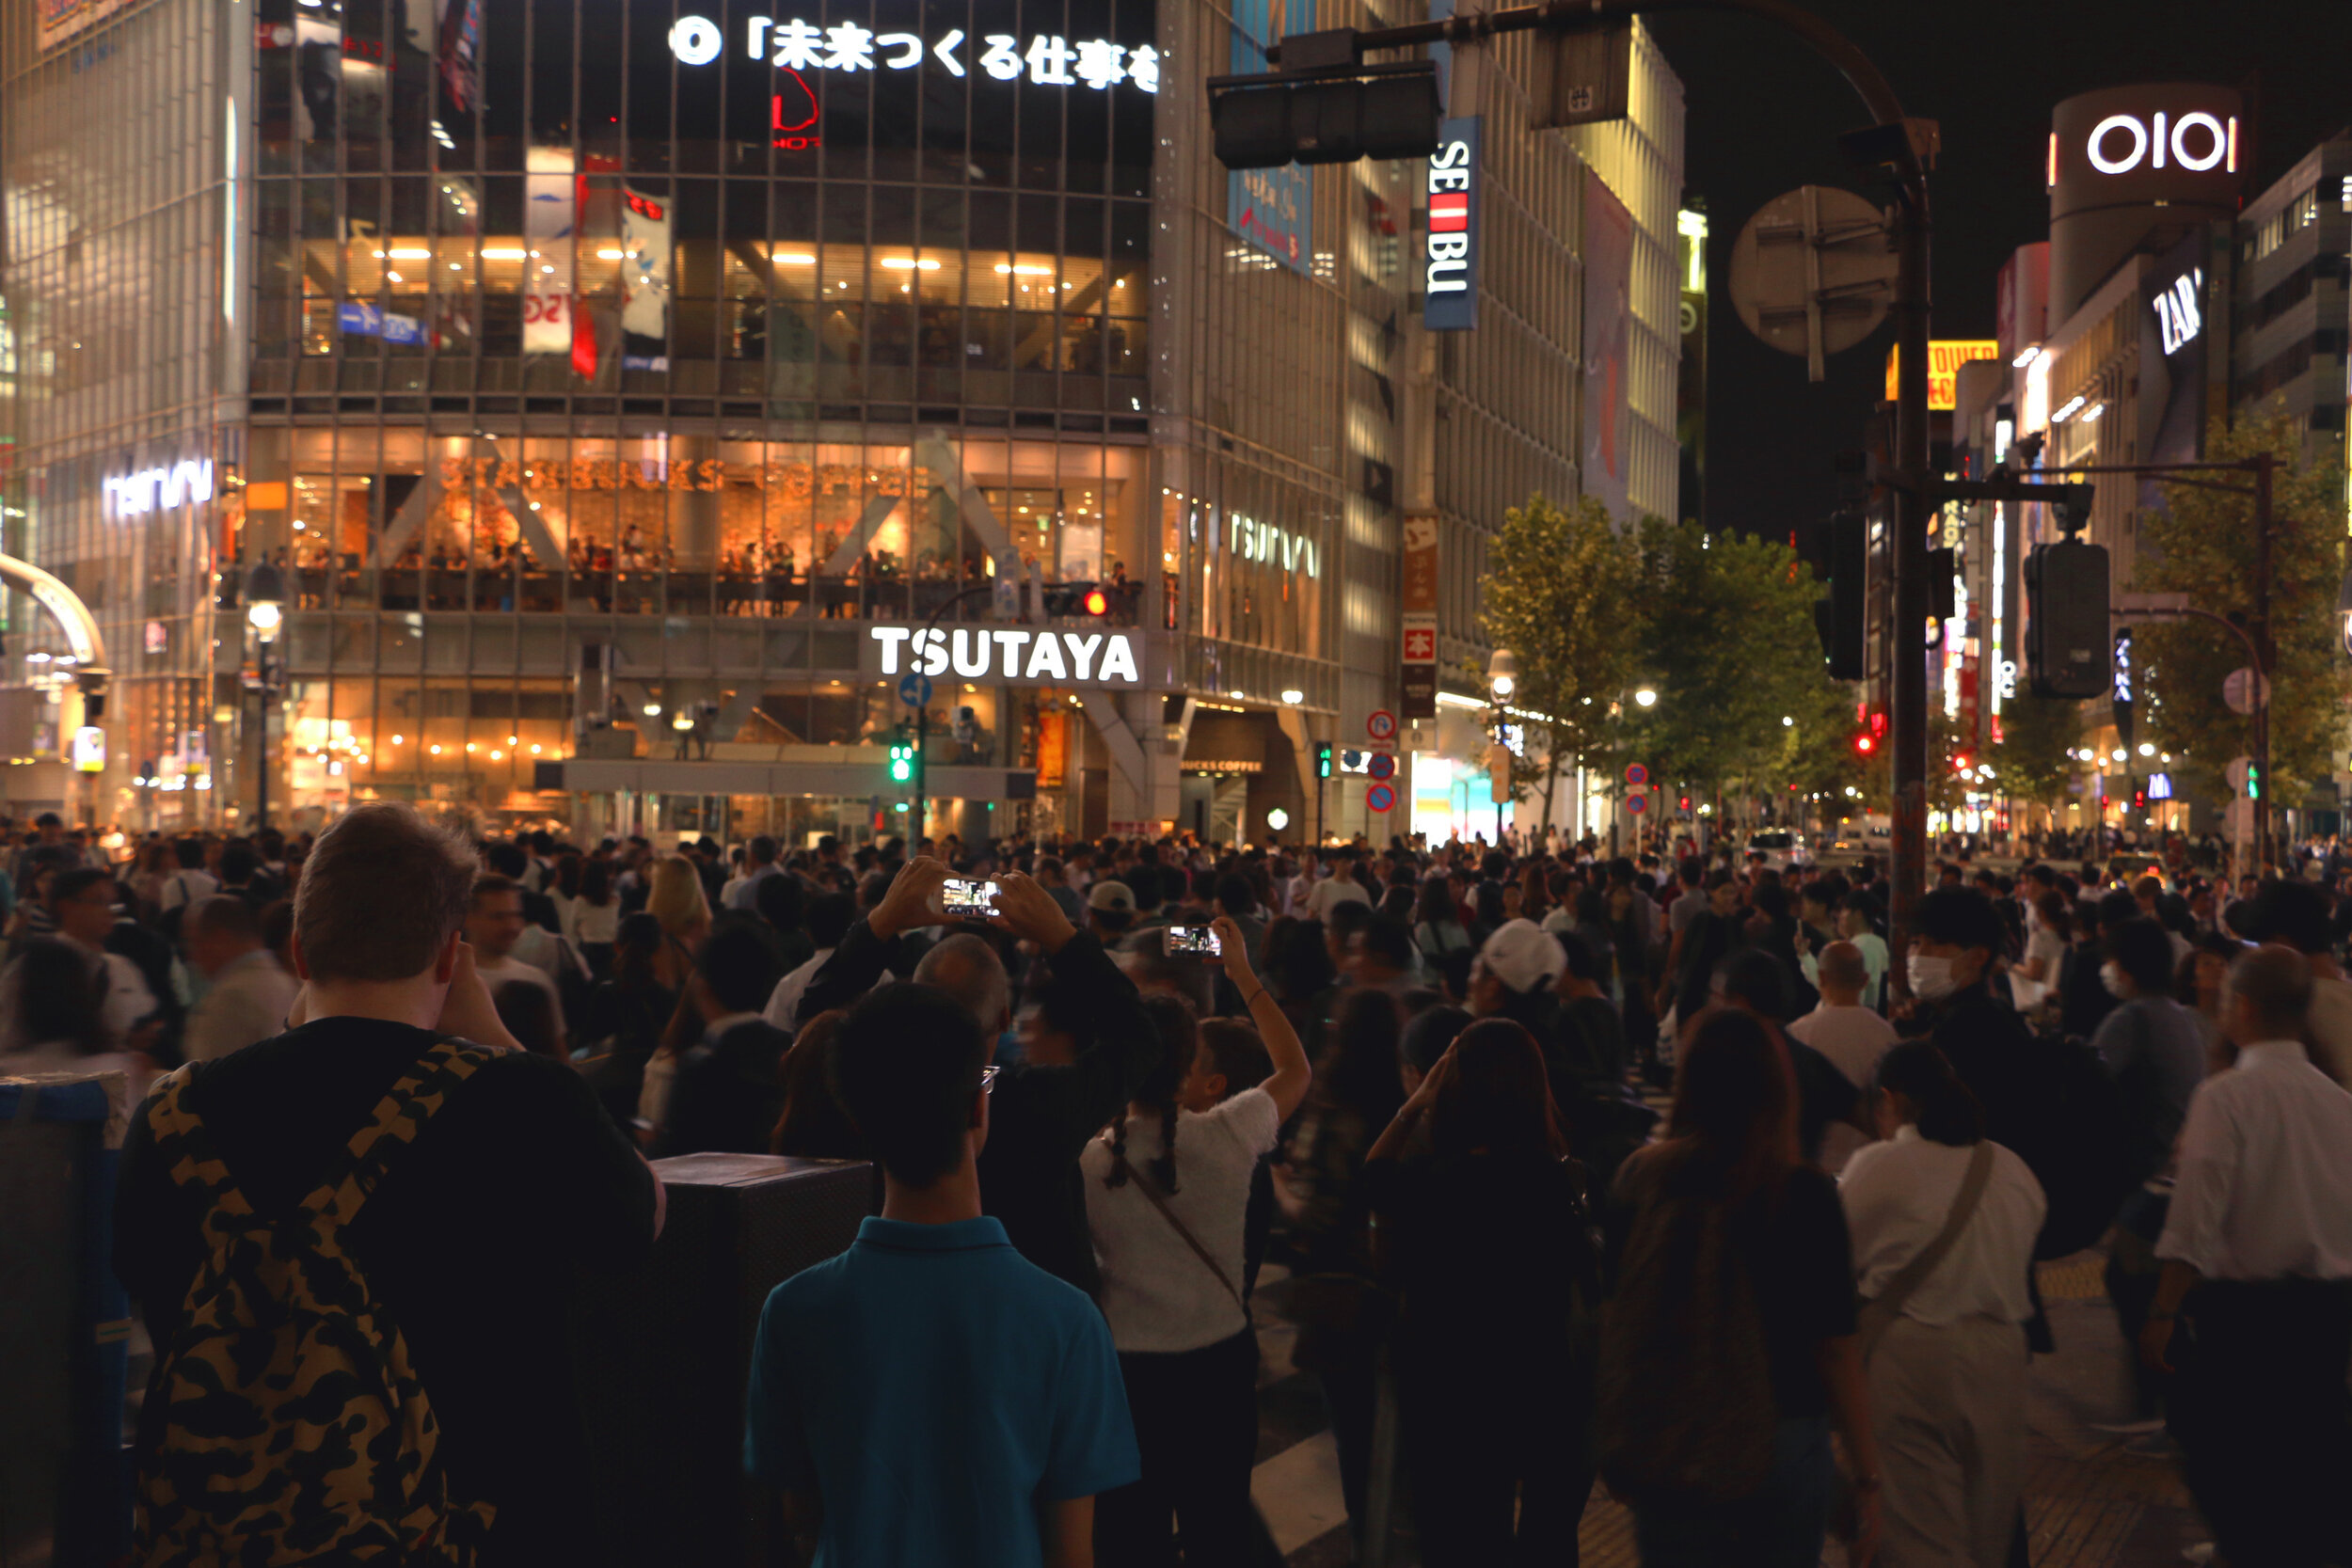 Shibuya Crossing, the busiest crossing in the world. It was INSANE.